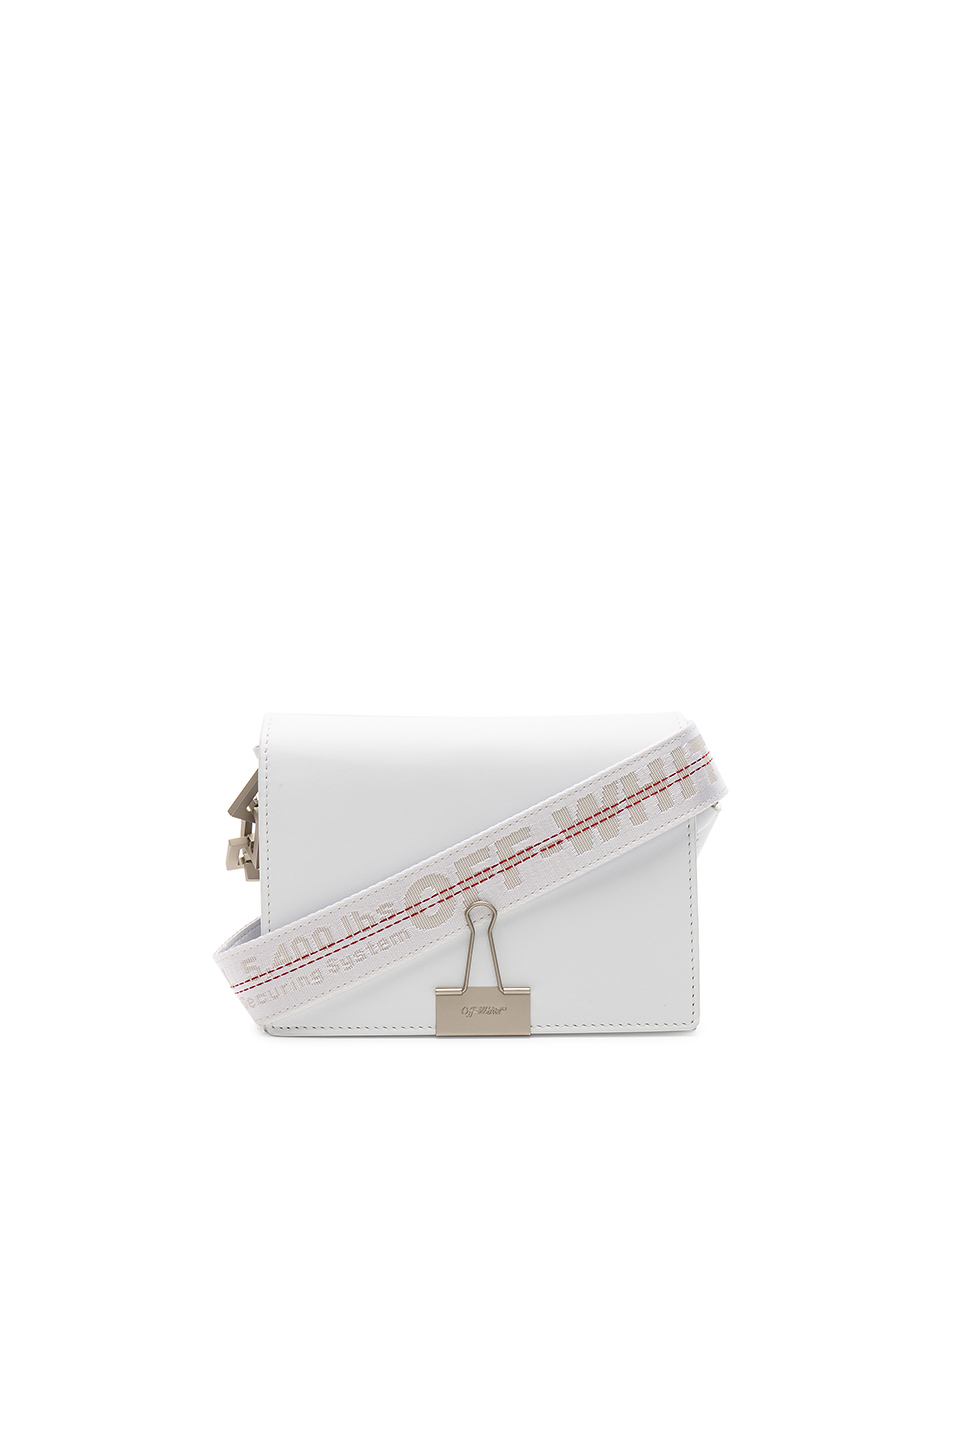 50ebed3f94b Buy Original OFF-WHITE Flap Bag at Indonesia | BOBOBOBO